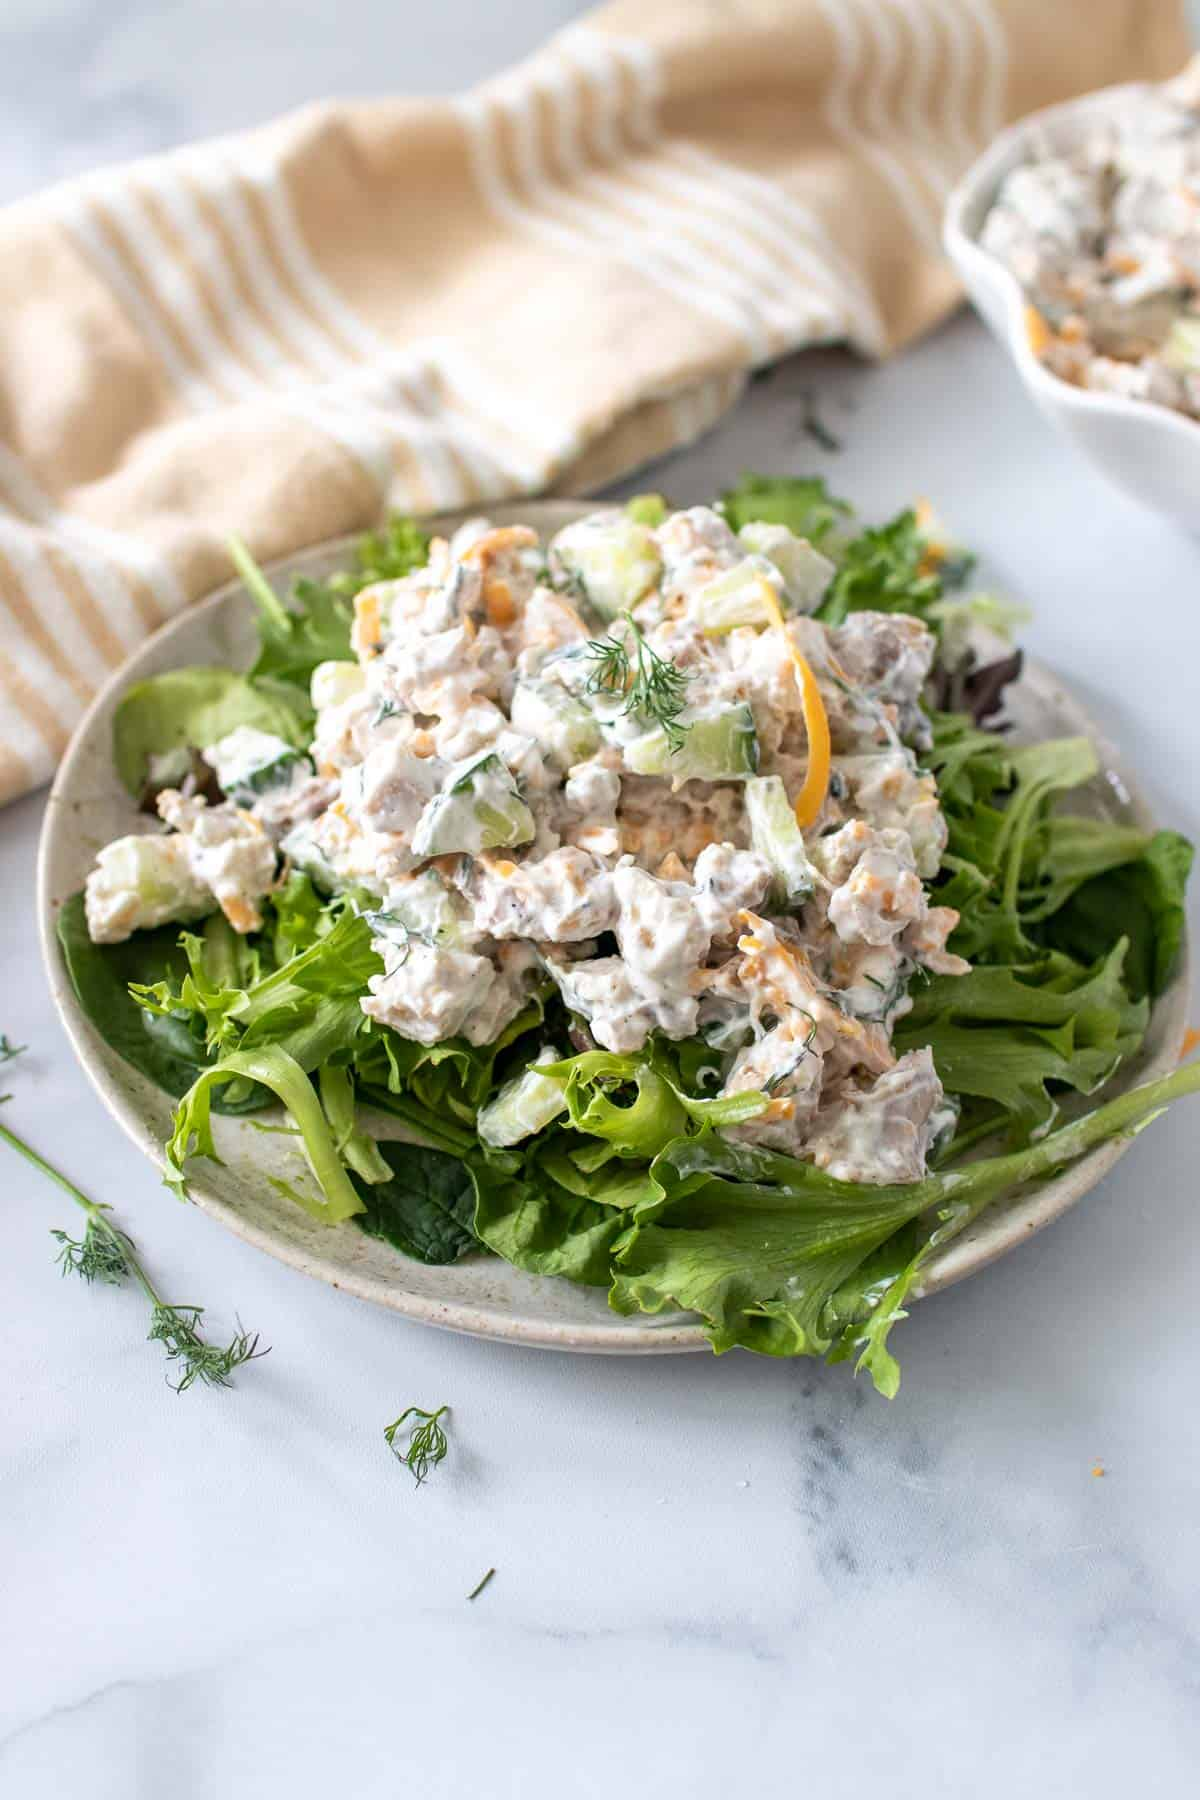 Chicken salad over fresh greens on a rustic plate with cloth napkin in the background